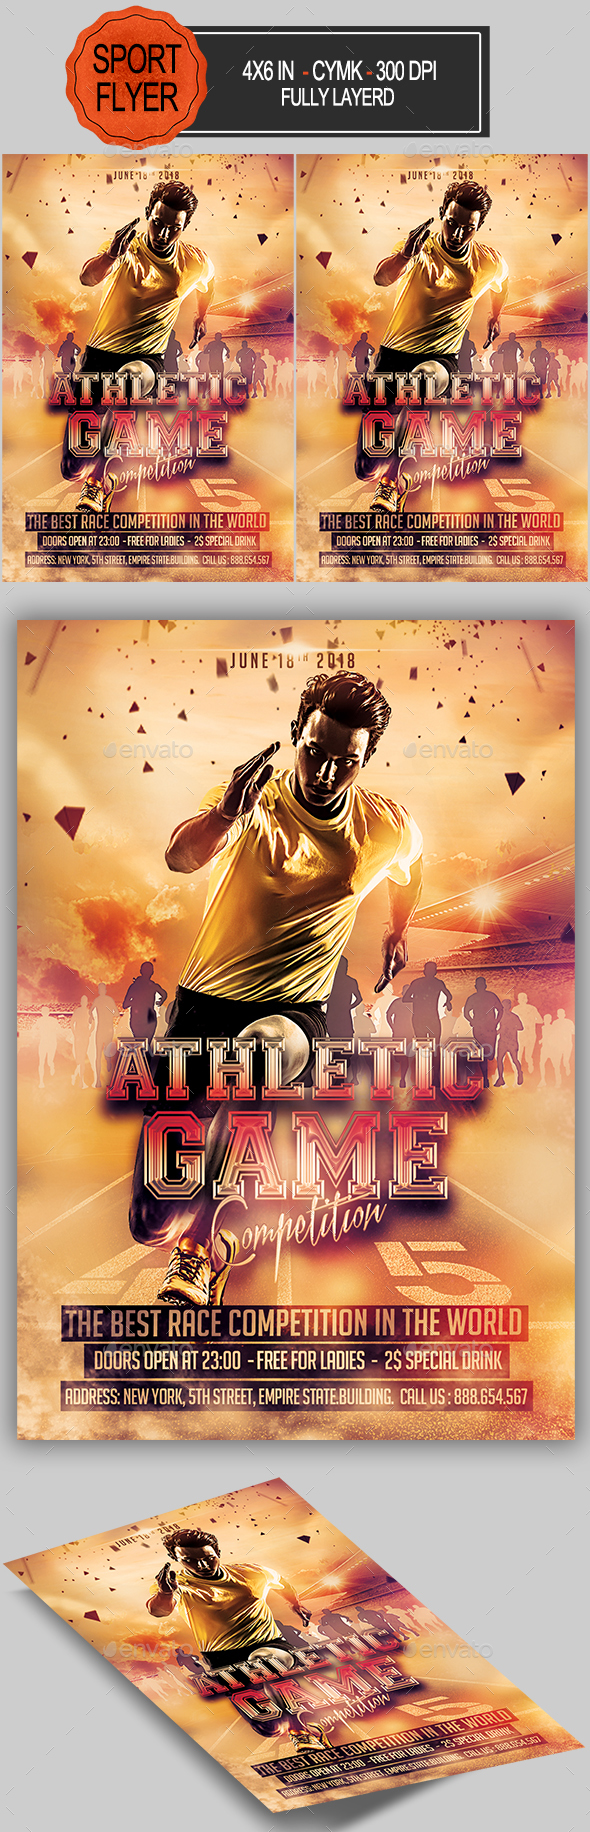 Athletic Game Competition Flyer - Sports Events